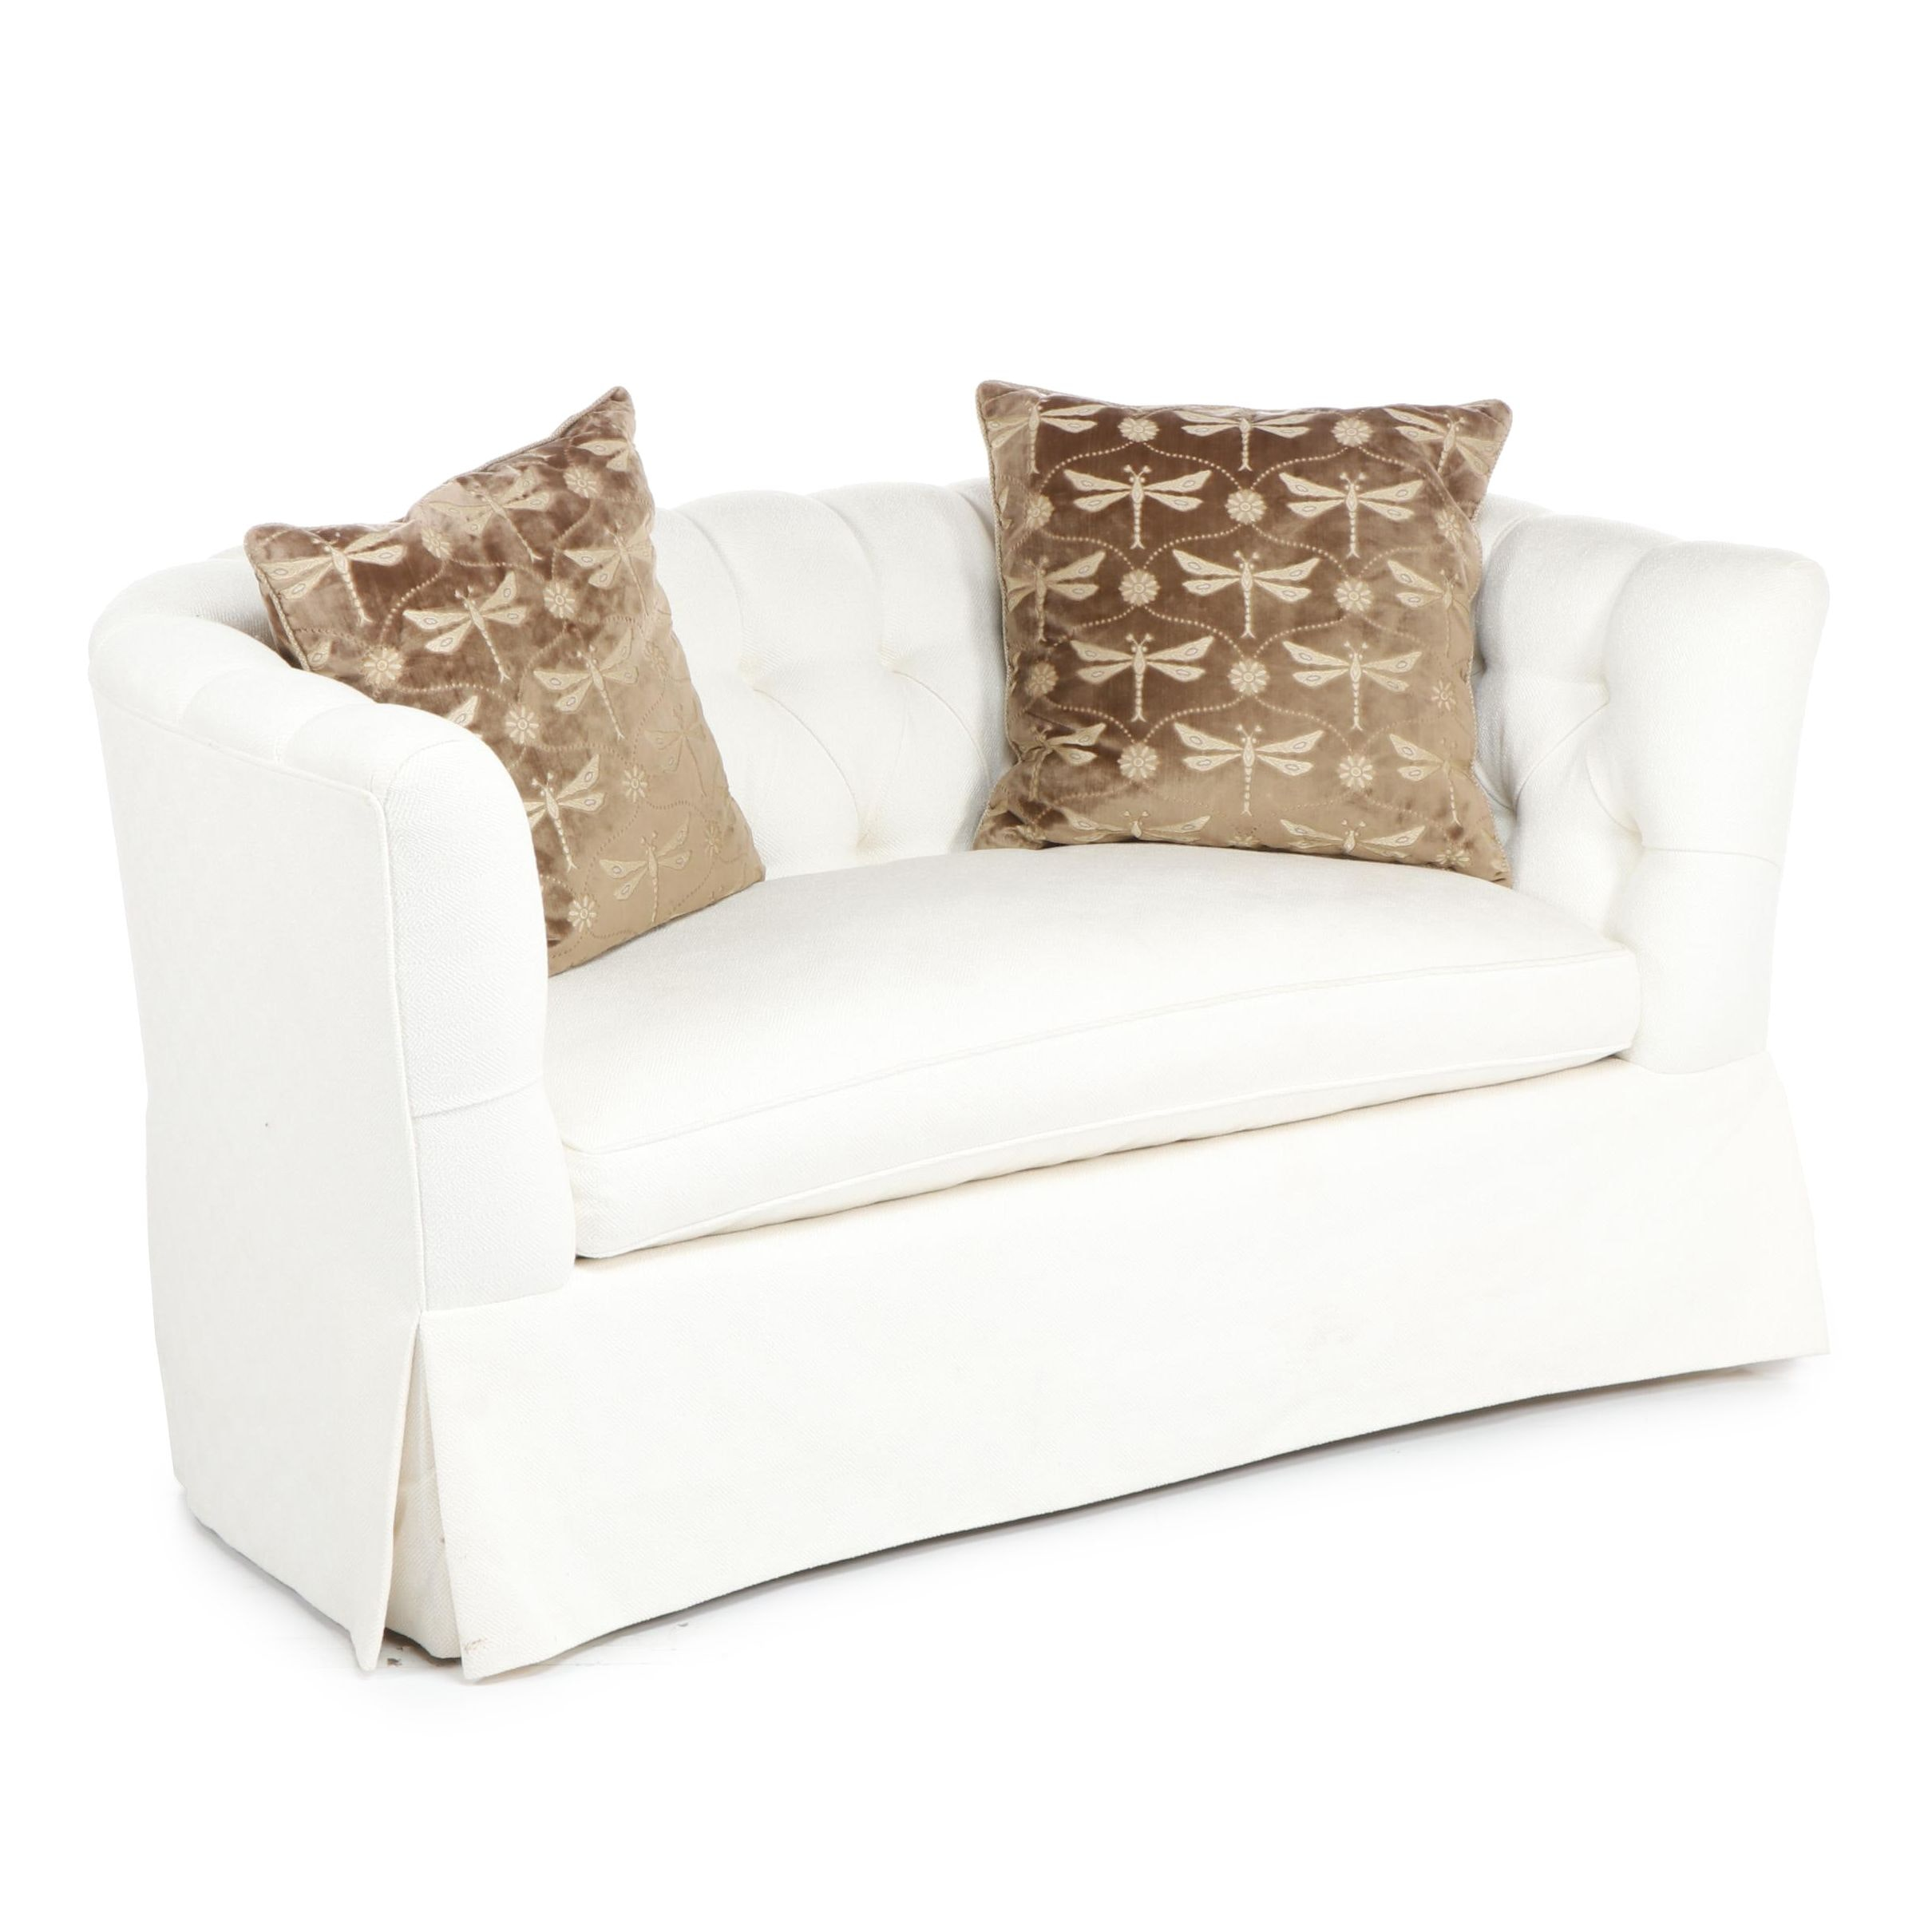 Mid-Century White Upholstered Tufted Curved Back Sofa with Accent Pillows